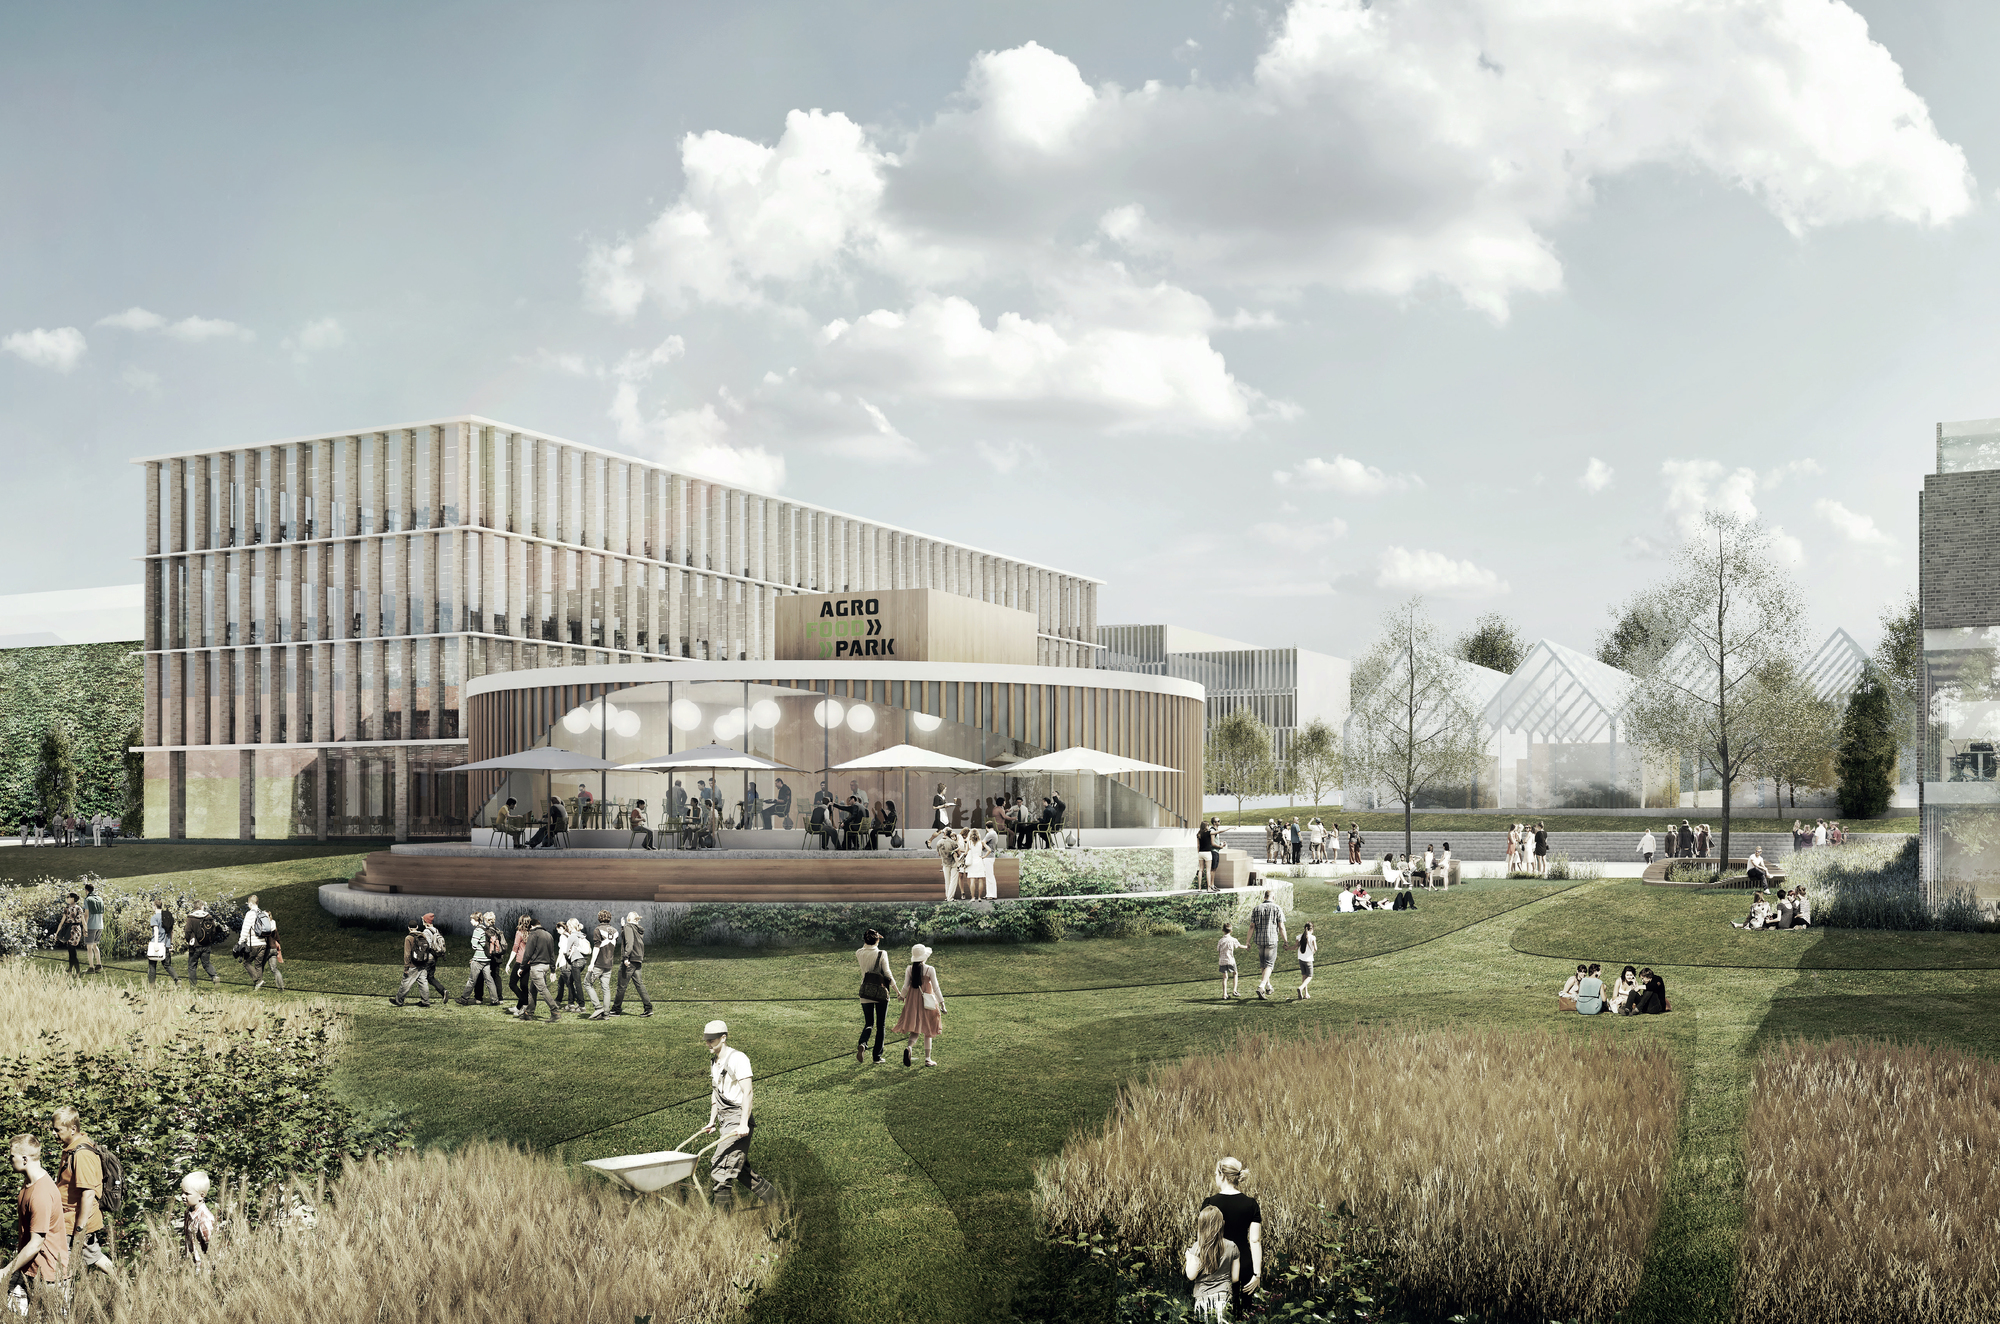 Agro food park expansion in denmark to combine urbanity and agriculture archdaily for 400 garden city plaza